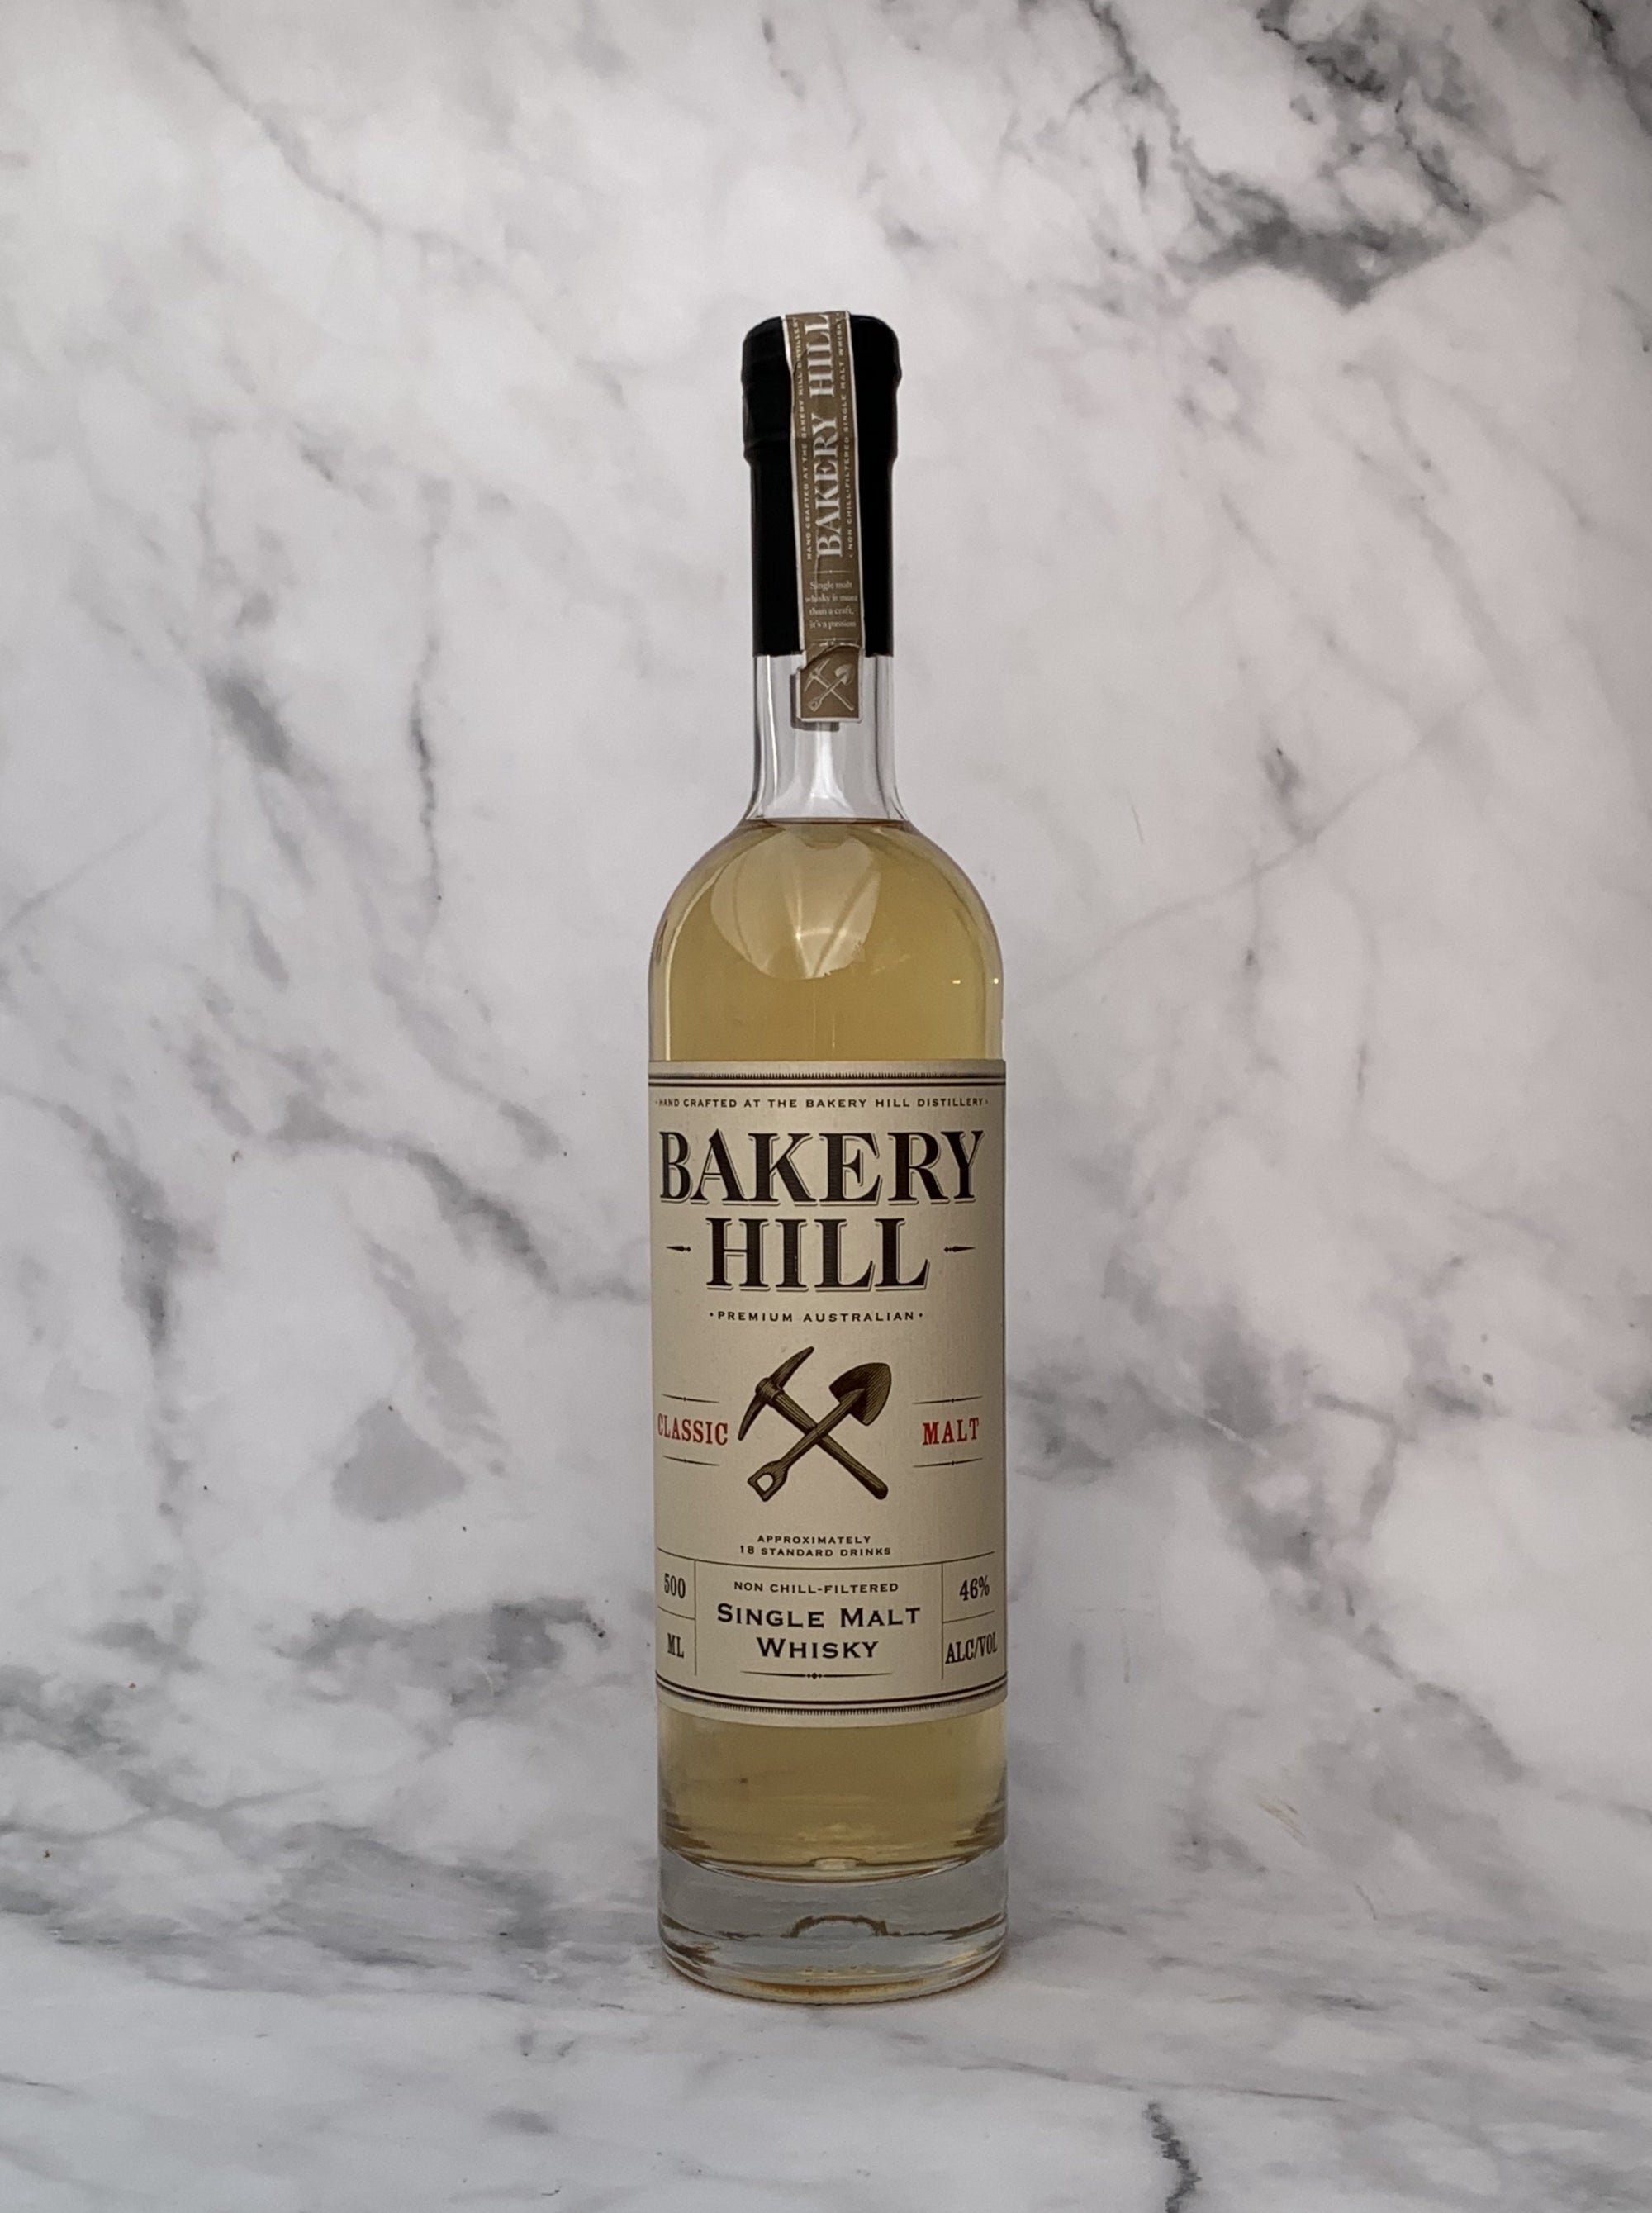 Bakery Hill Classic Malt Whisky (50ml serve)